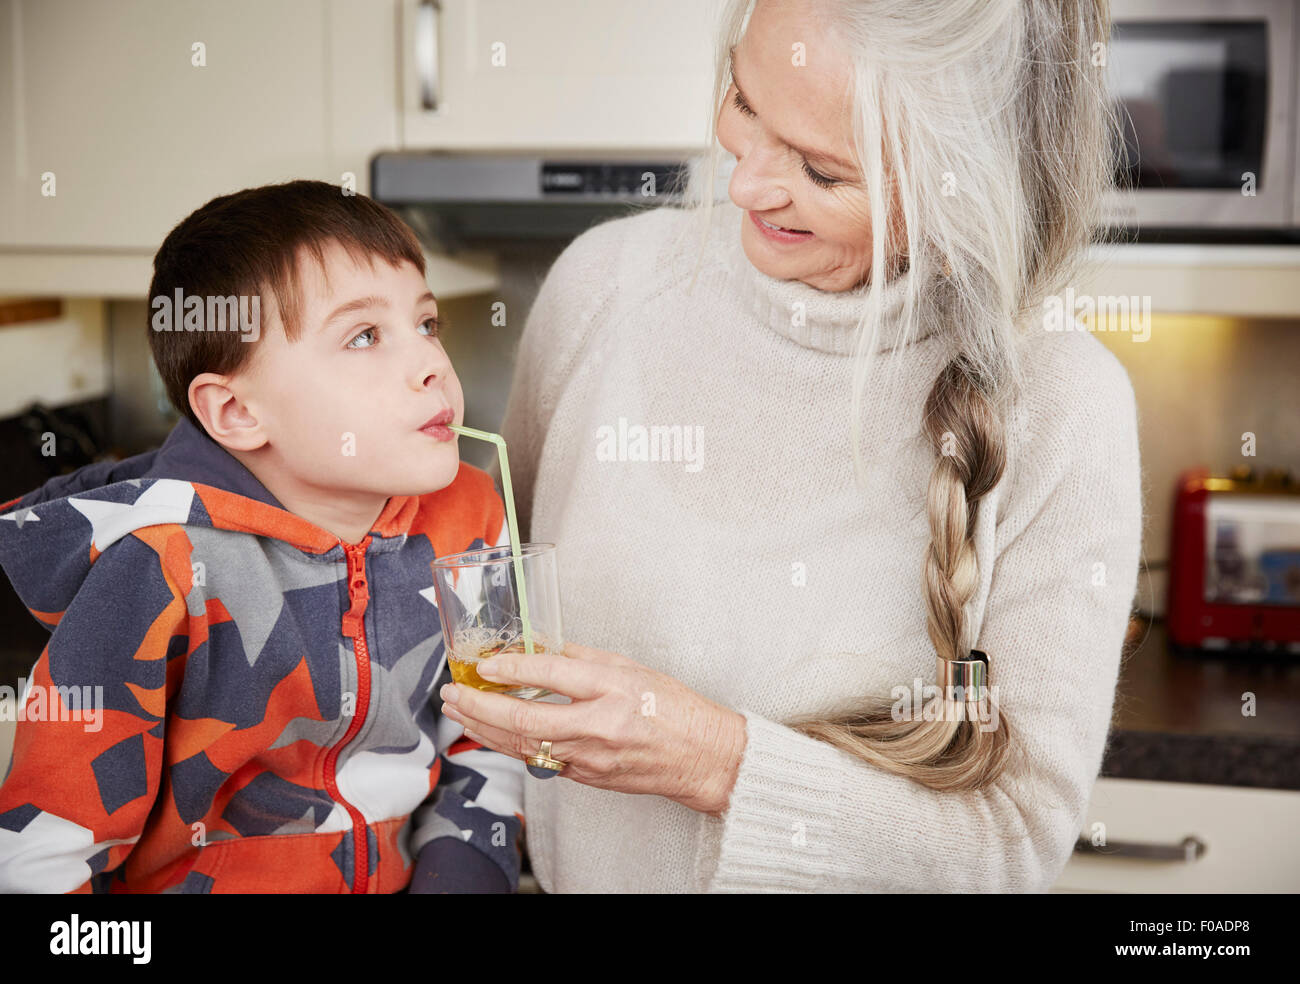 Grandmother offering grandson drink - Stock Image